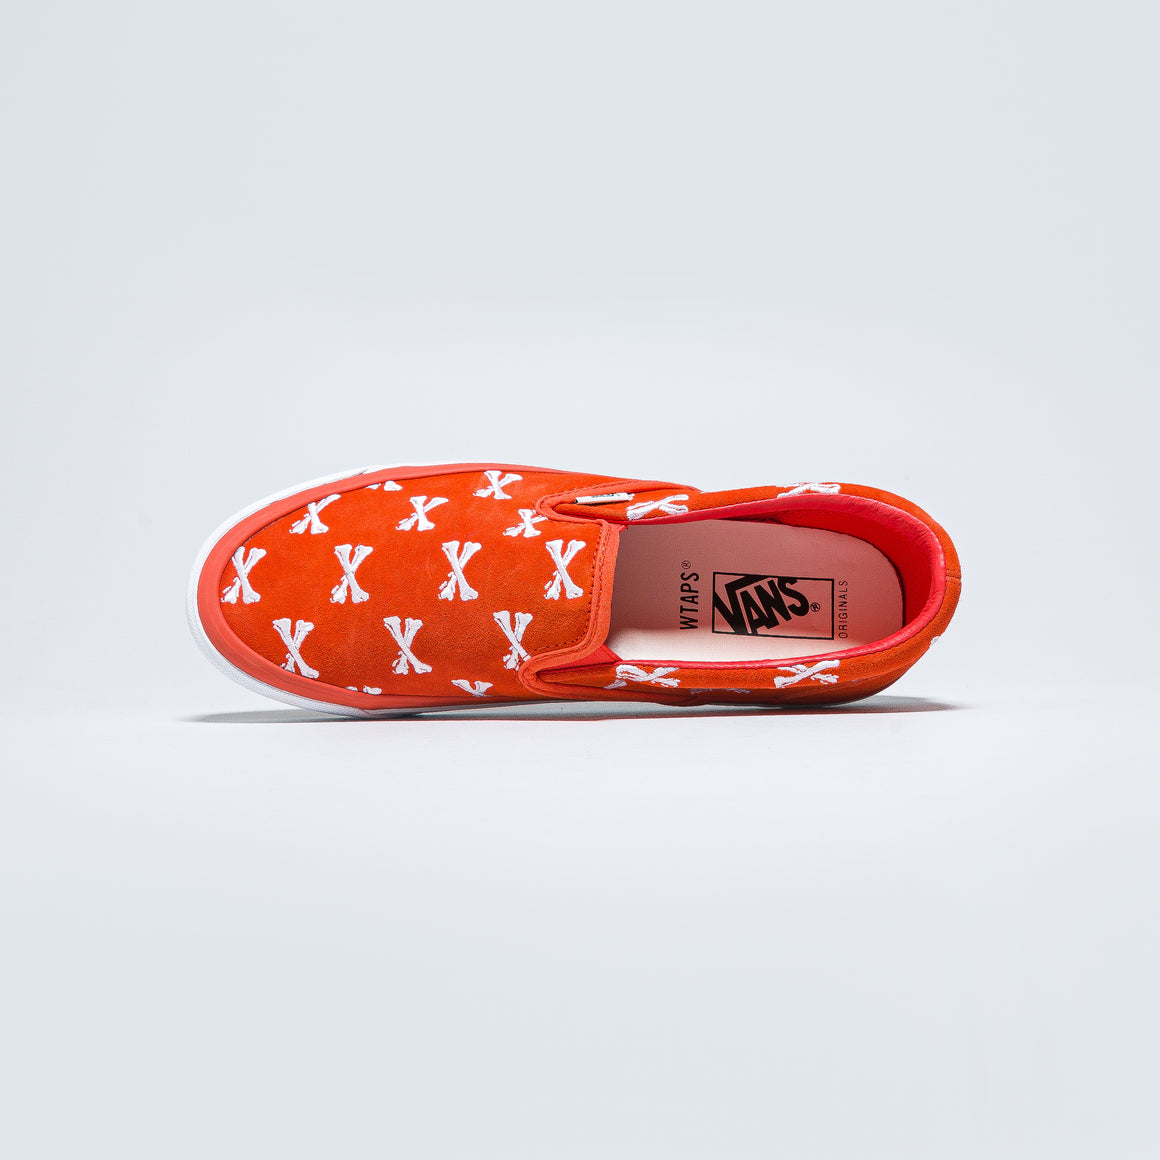 Vans - OG Classic Slip-On LX x Wtaps - Bones/Orange - Up There